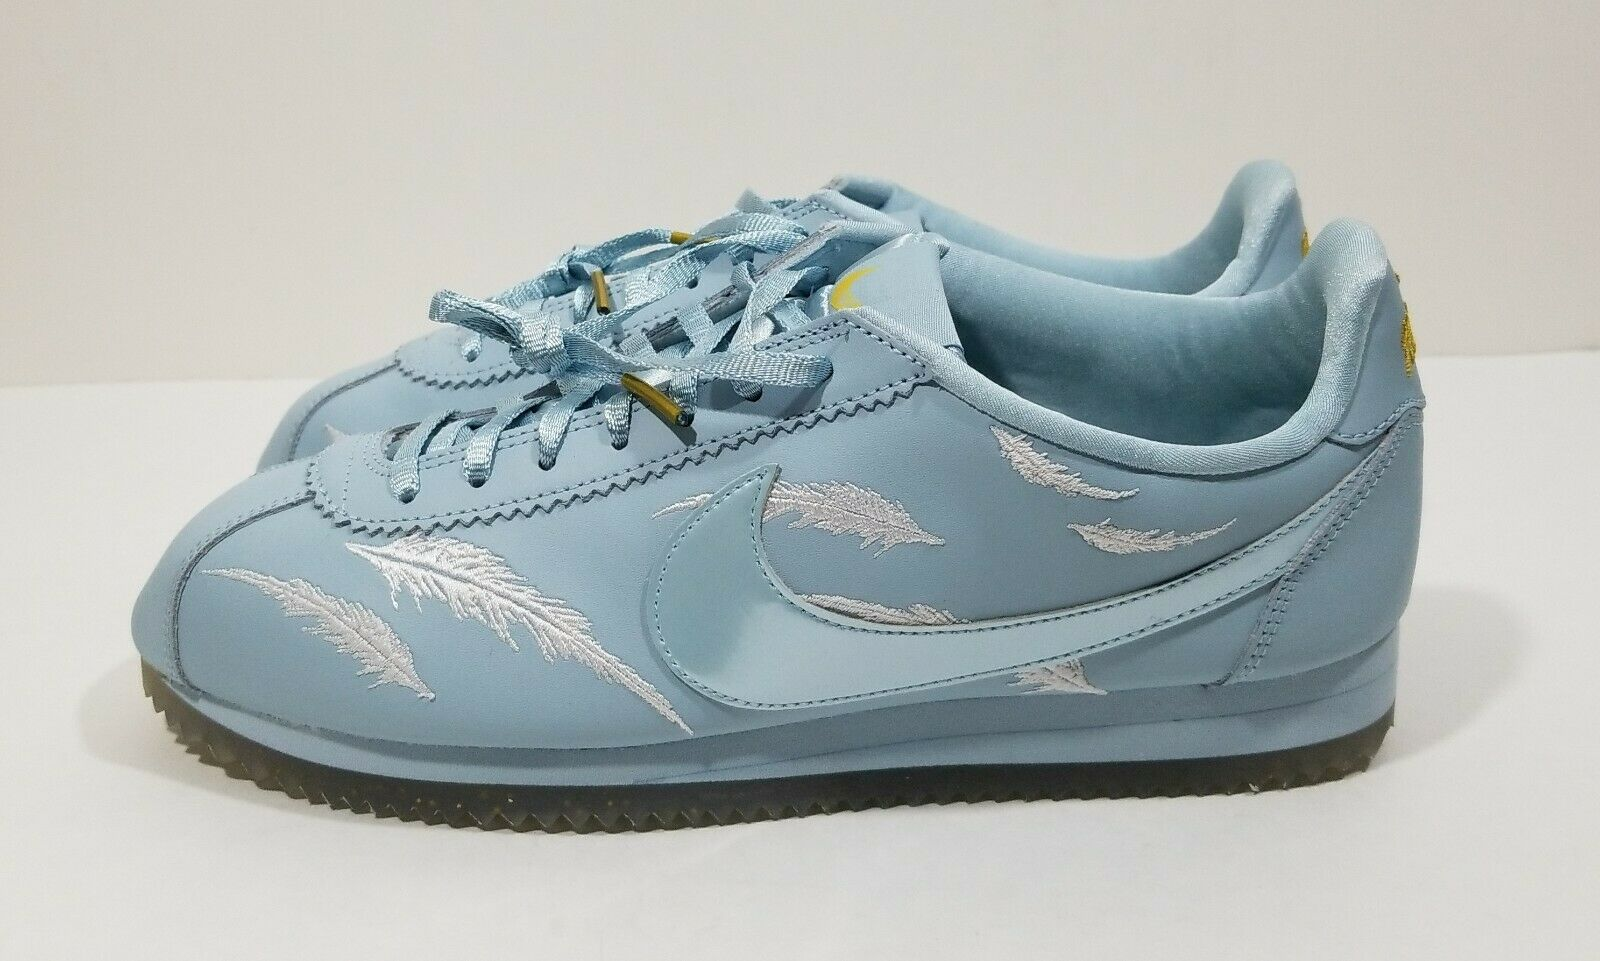 Nike Classic Cortez Goddess of Victory Womens Running shoes Ocean Bliss Size 9.5